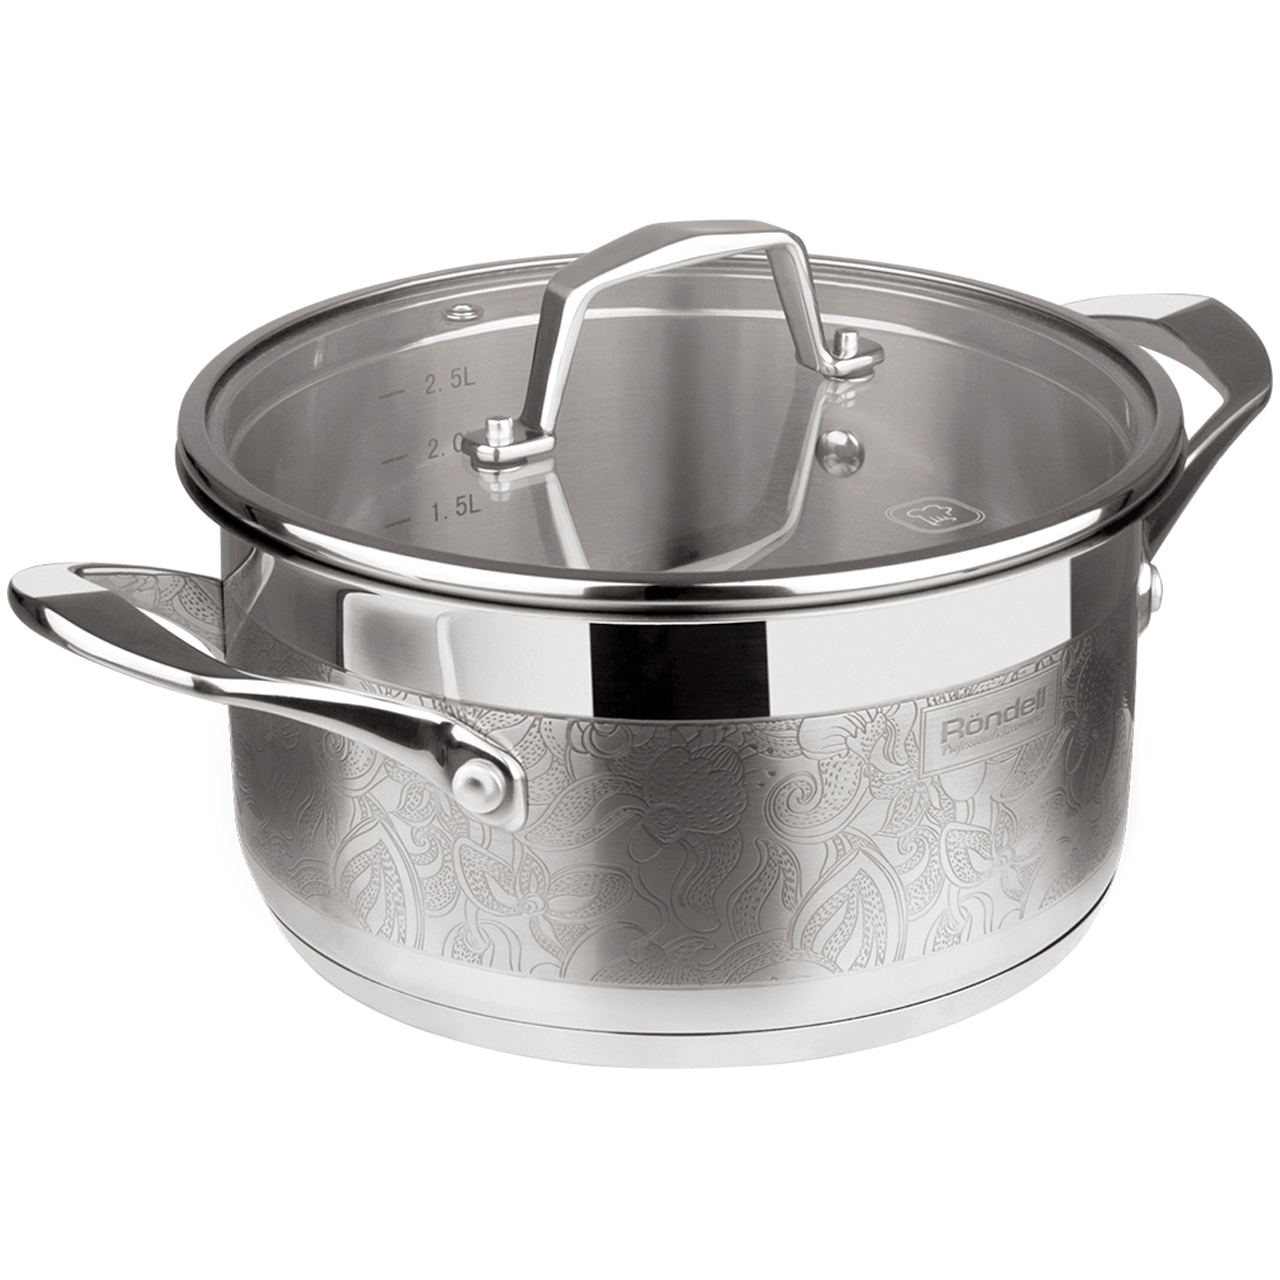 Pot with lid Rondell Fancy 20 cm (2,5) RDS-397 (Diameter 20 cm, volume 2.5 l stainless steel, suitable for all types of plates)